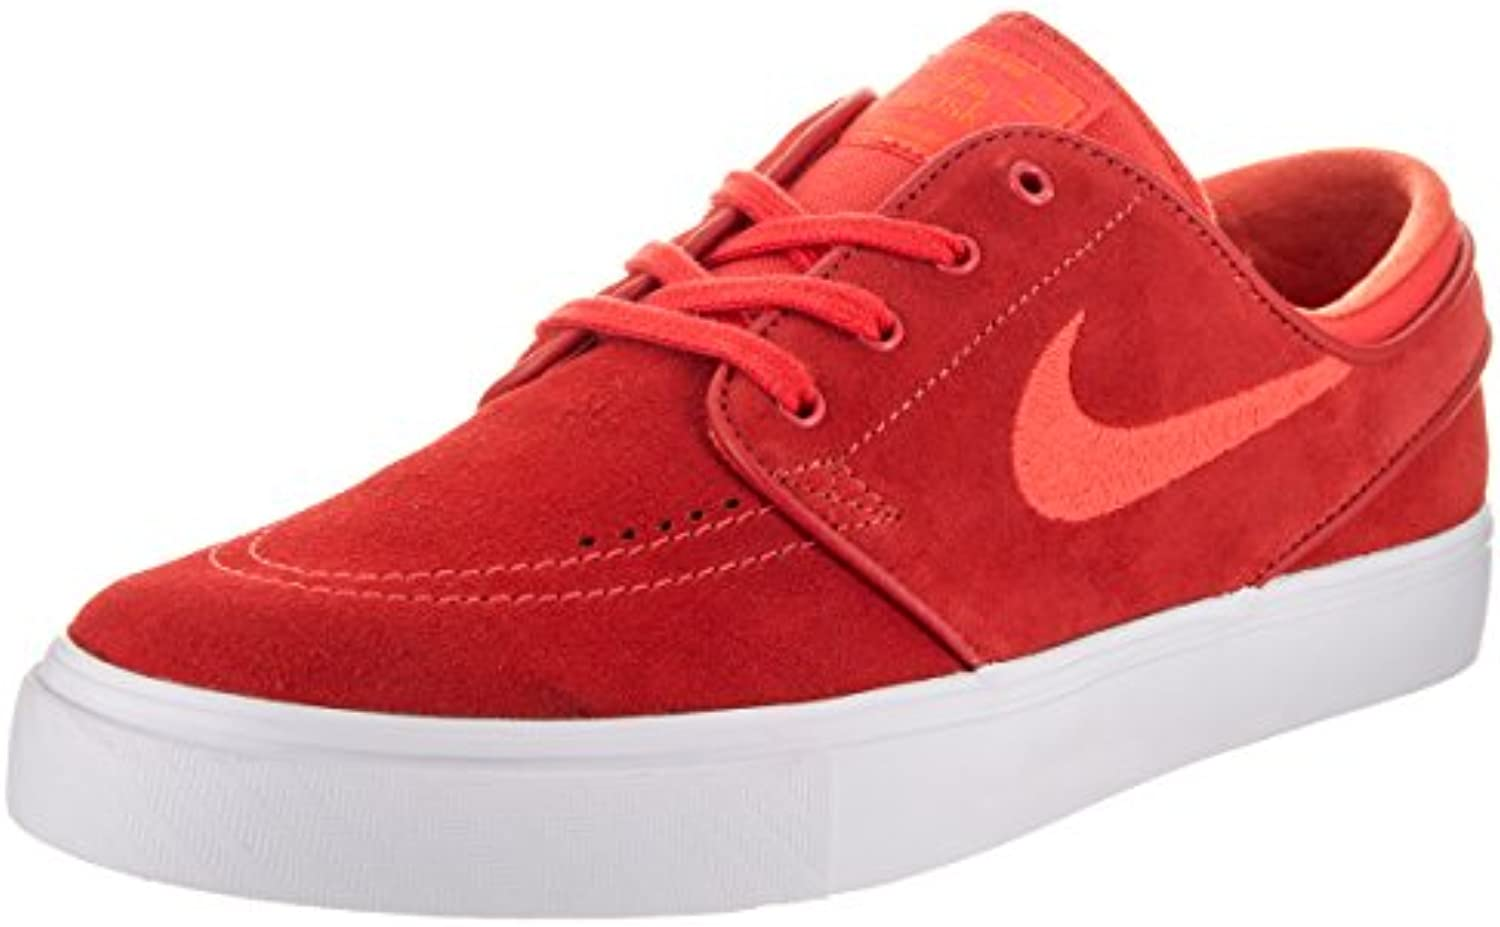 Nike Unisex SB Zoom Janoski Cpsl Max Orange/Max Orange Skate Shoe 10.5 Men US/12 Women US